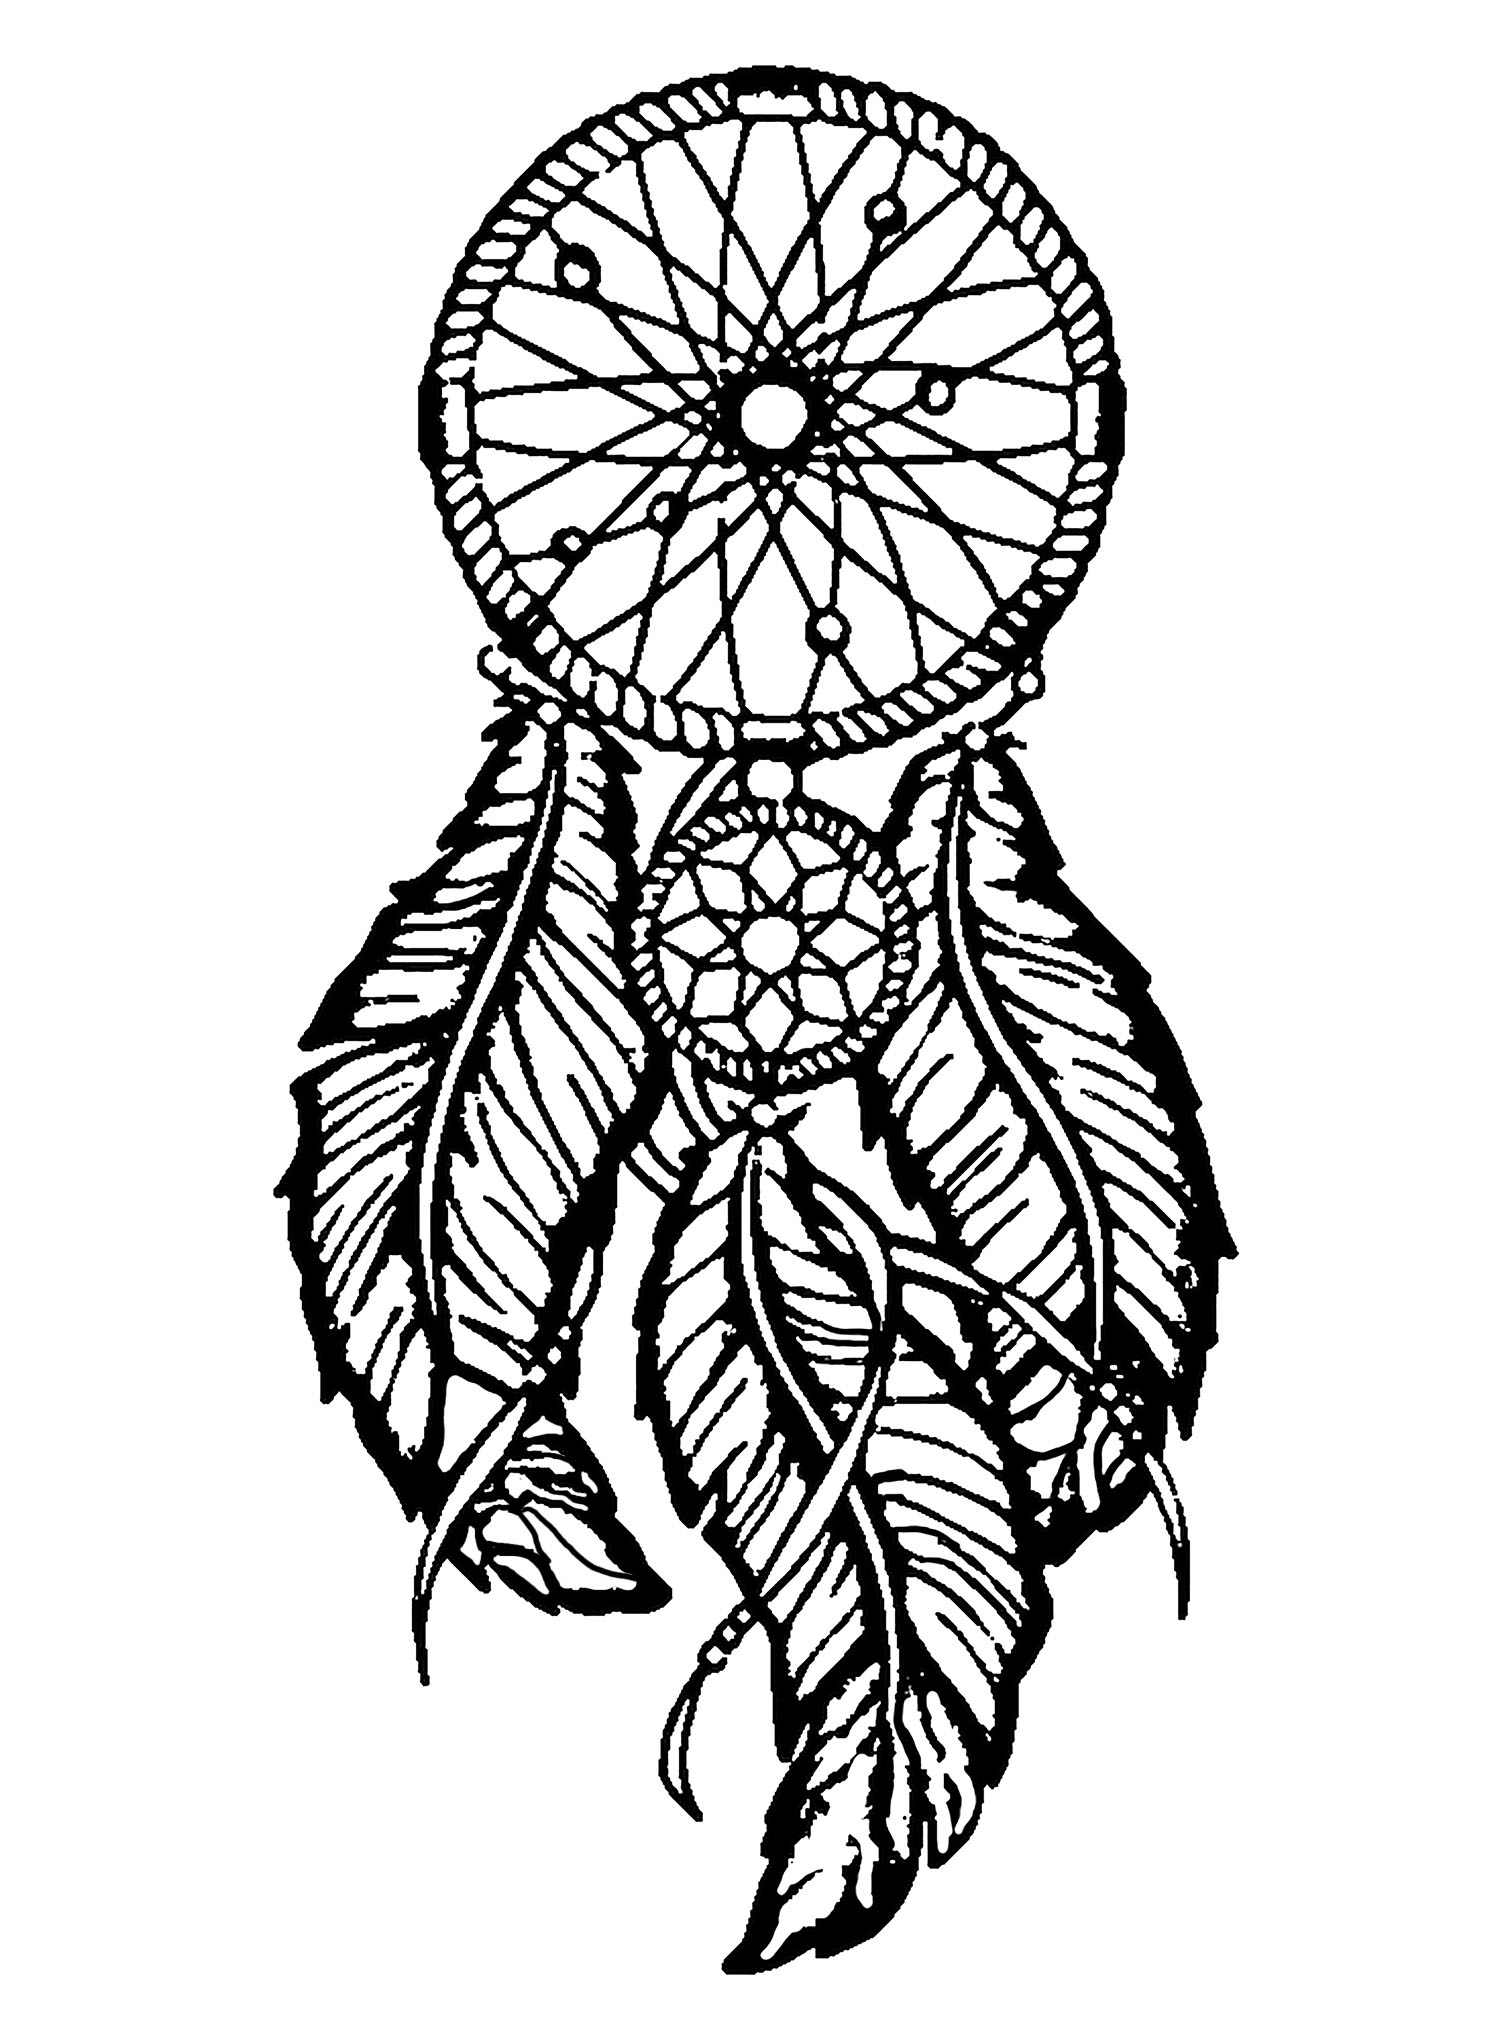 coloring pages for print dream catcher coloring pages best coloring pages for kids pages coloring print for